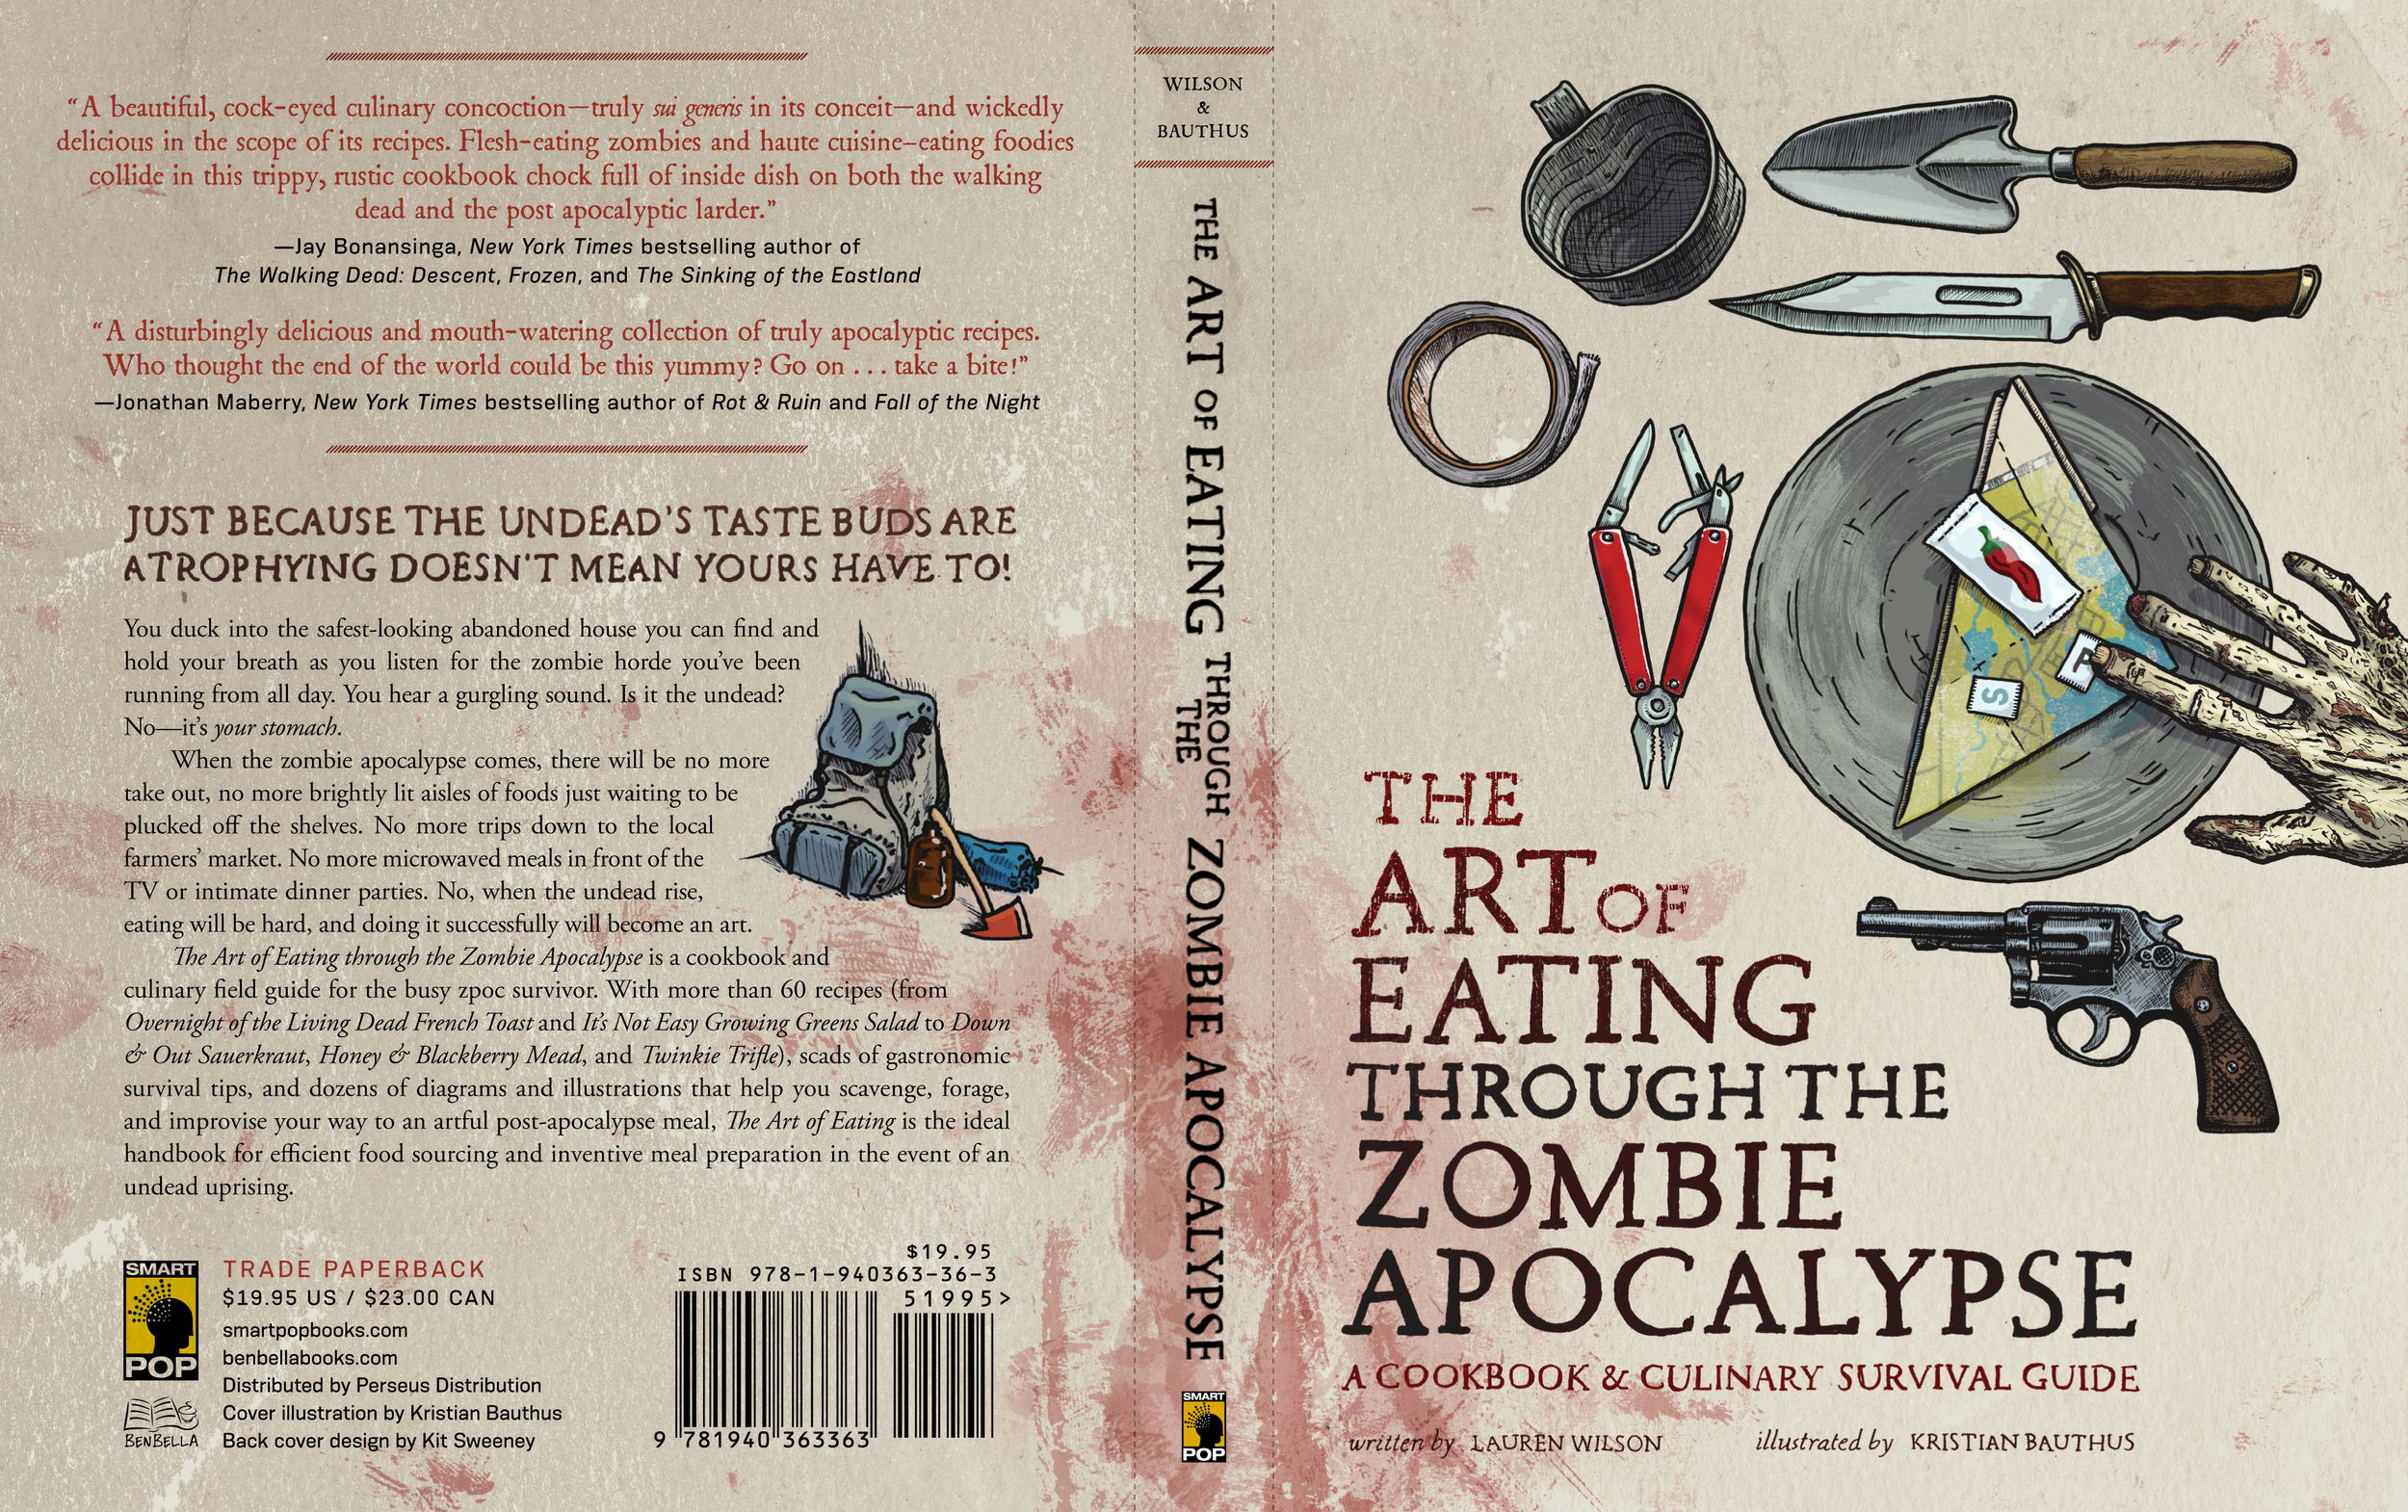 Launch day for The Art of Eating Through the Zombie Apocalypse by Lauren Wilson.